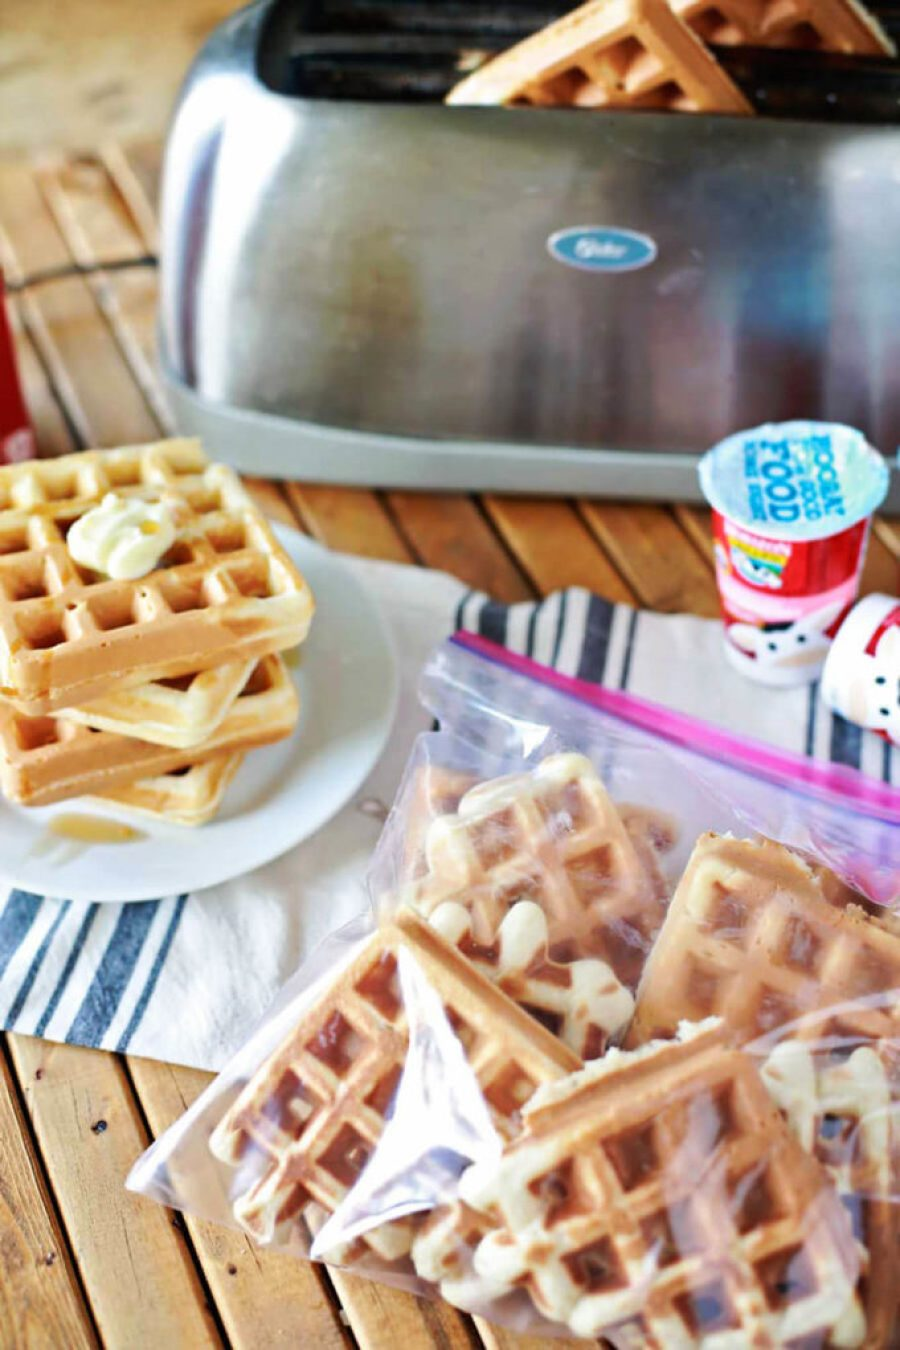 Homemade toaster waffles to make ahead and freezer, perfect for back to school mornings